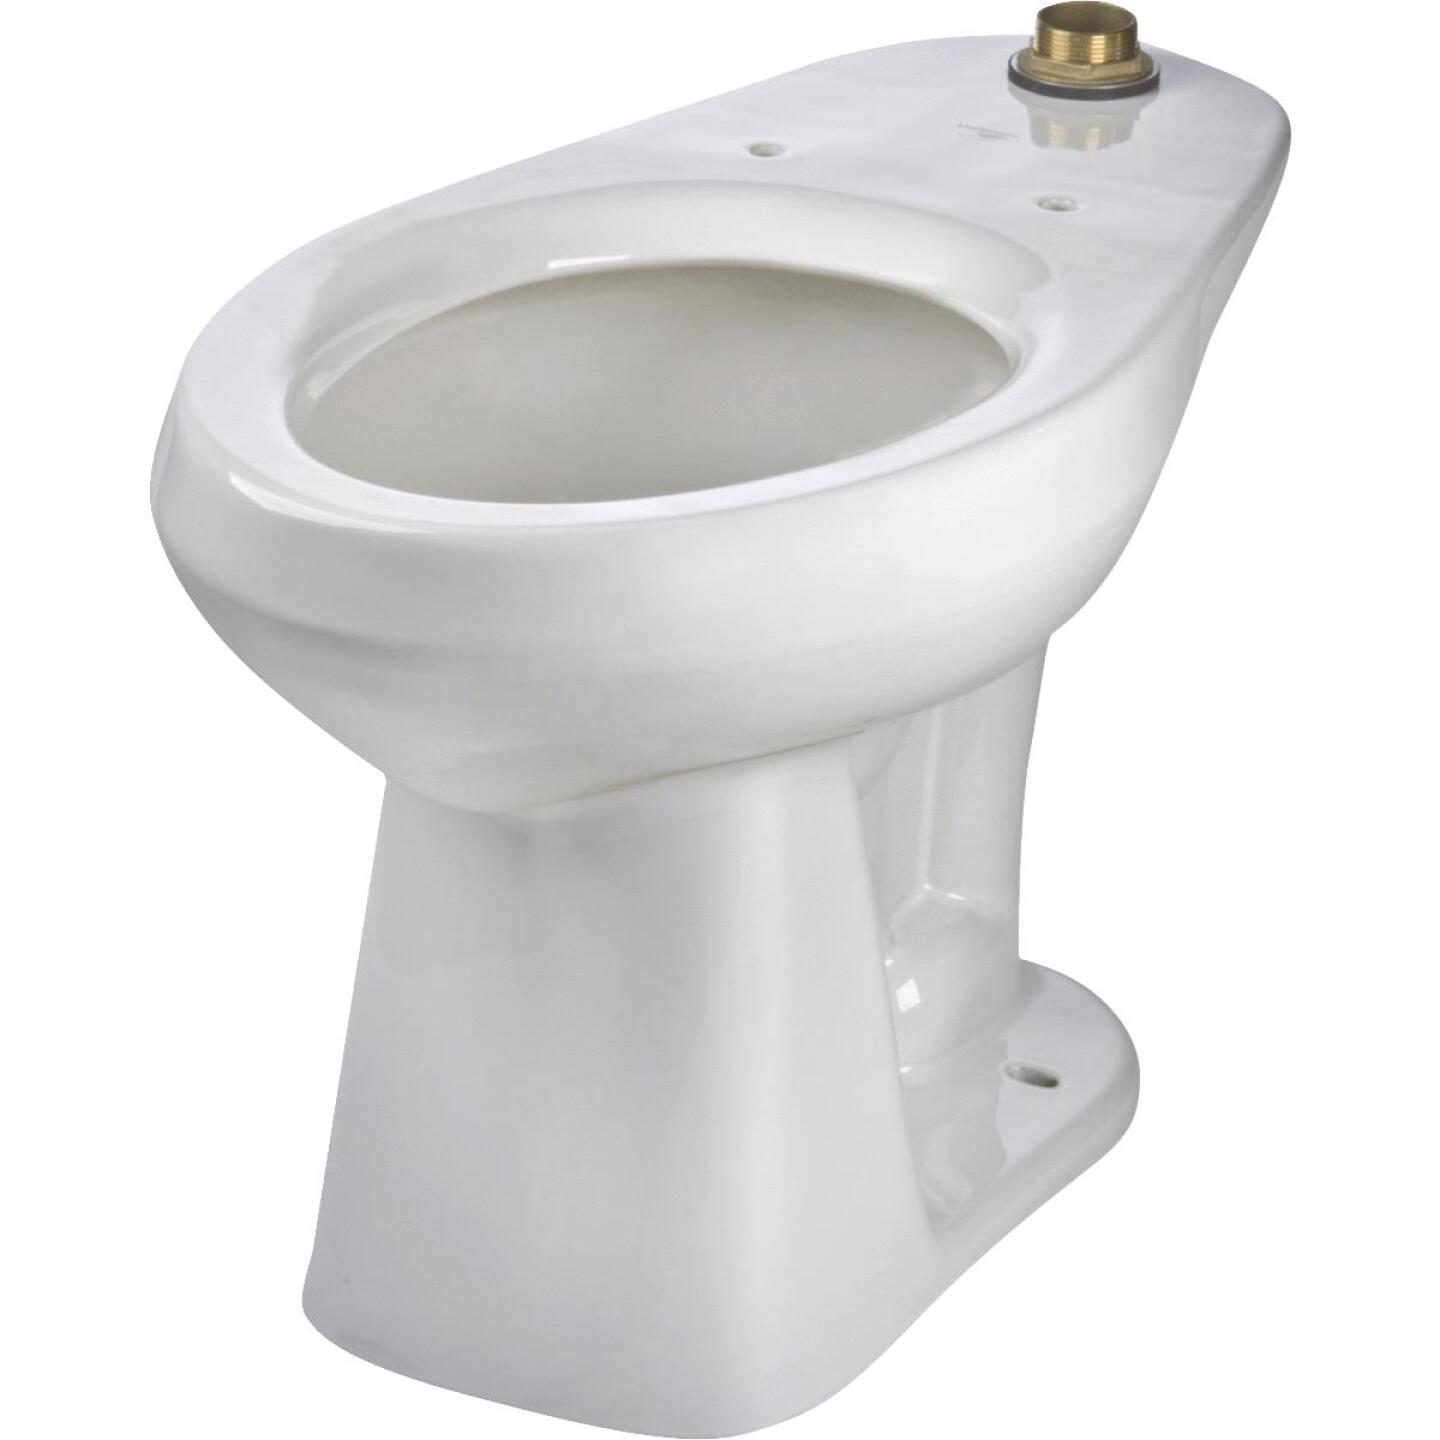 Mansfield Adriatic White Elongated 17 In. ADA Toilet Bowl Image 2